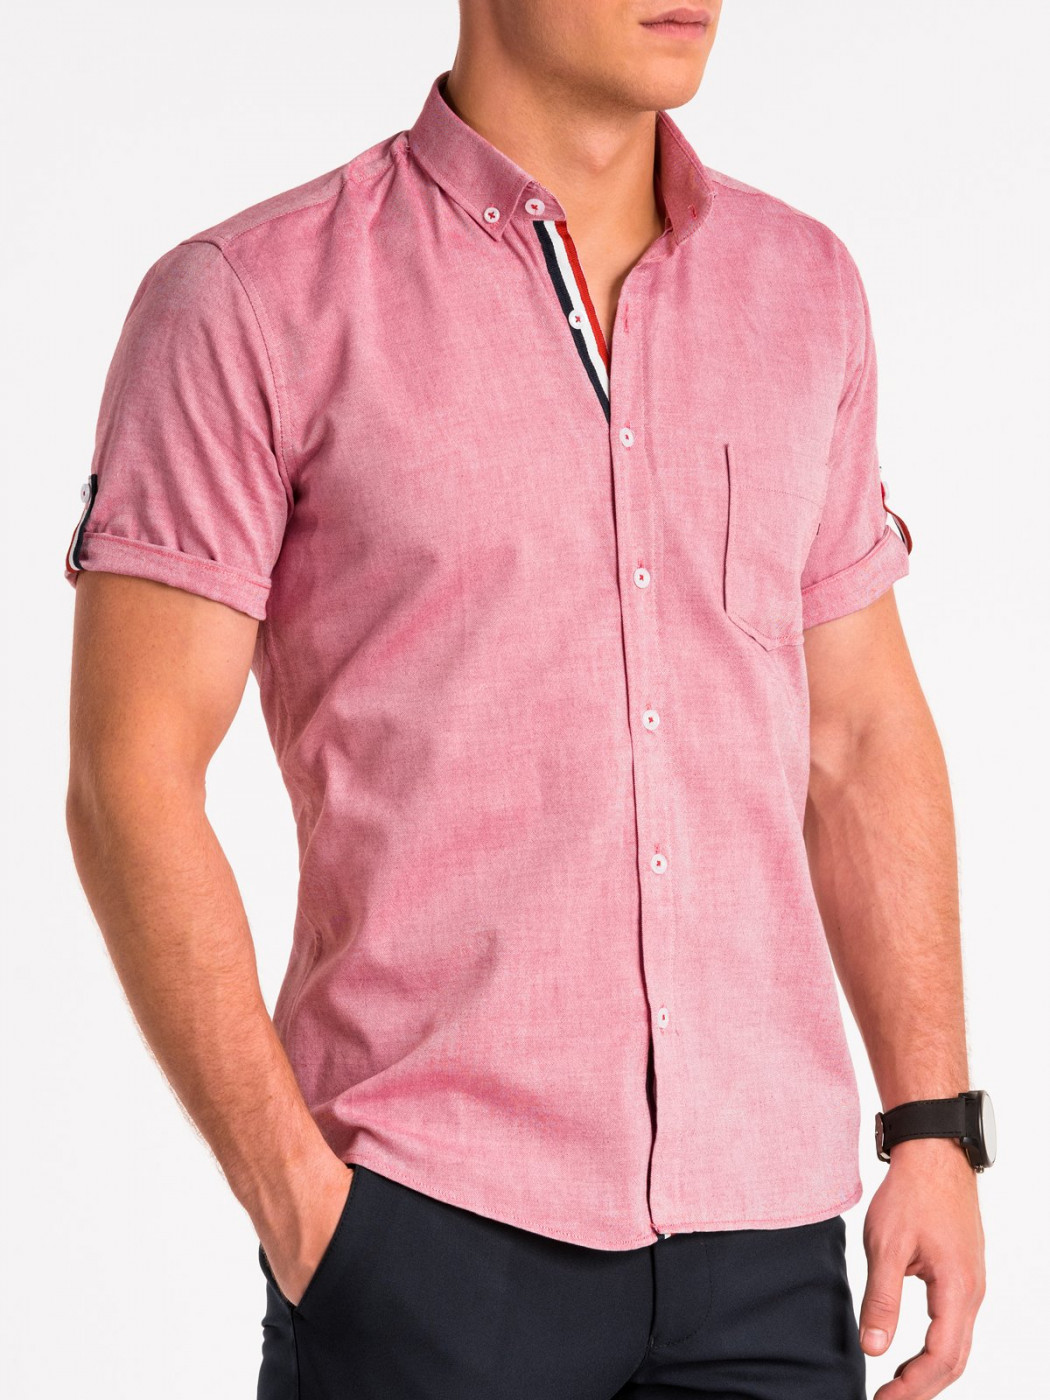 Men's shirt with short sleeves K489 - red